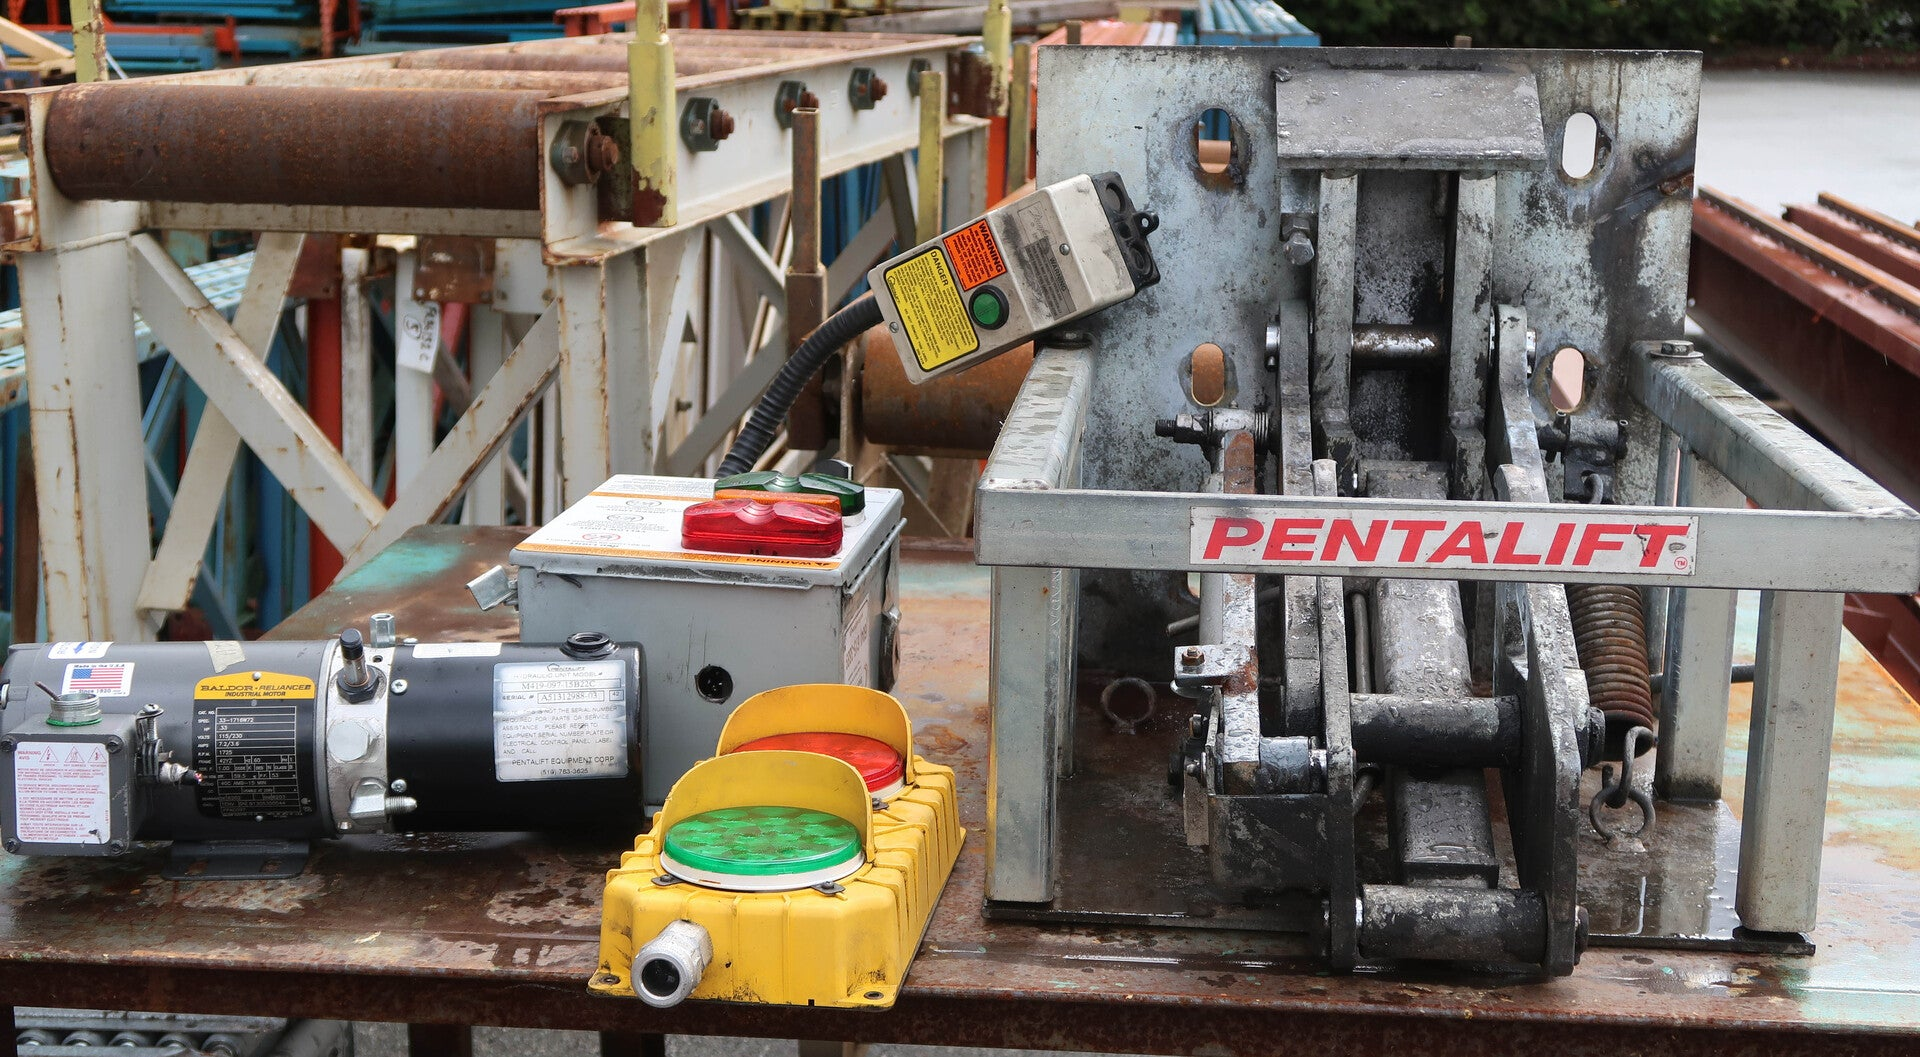 PENTALIFT Vehicle Restraint Safety System